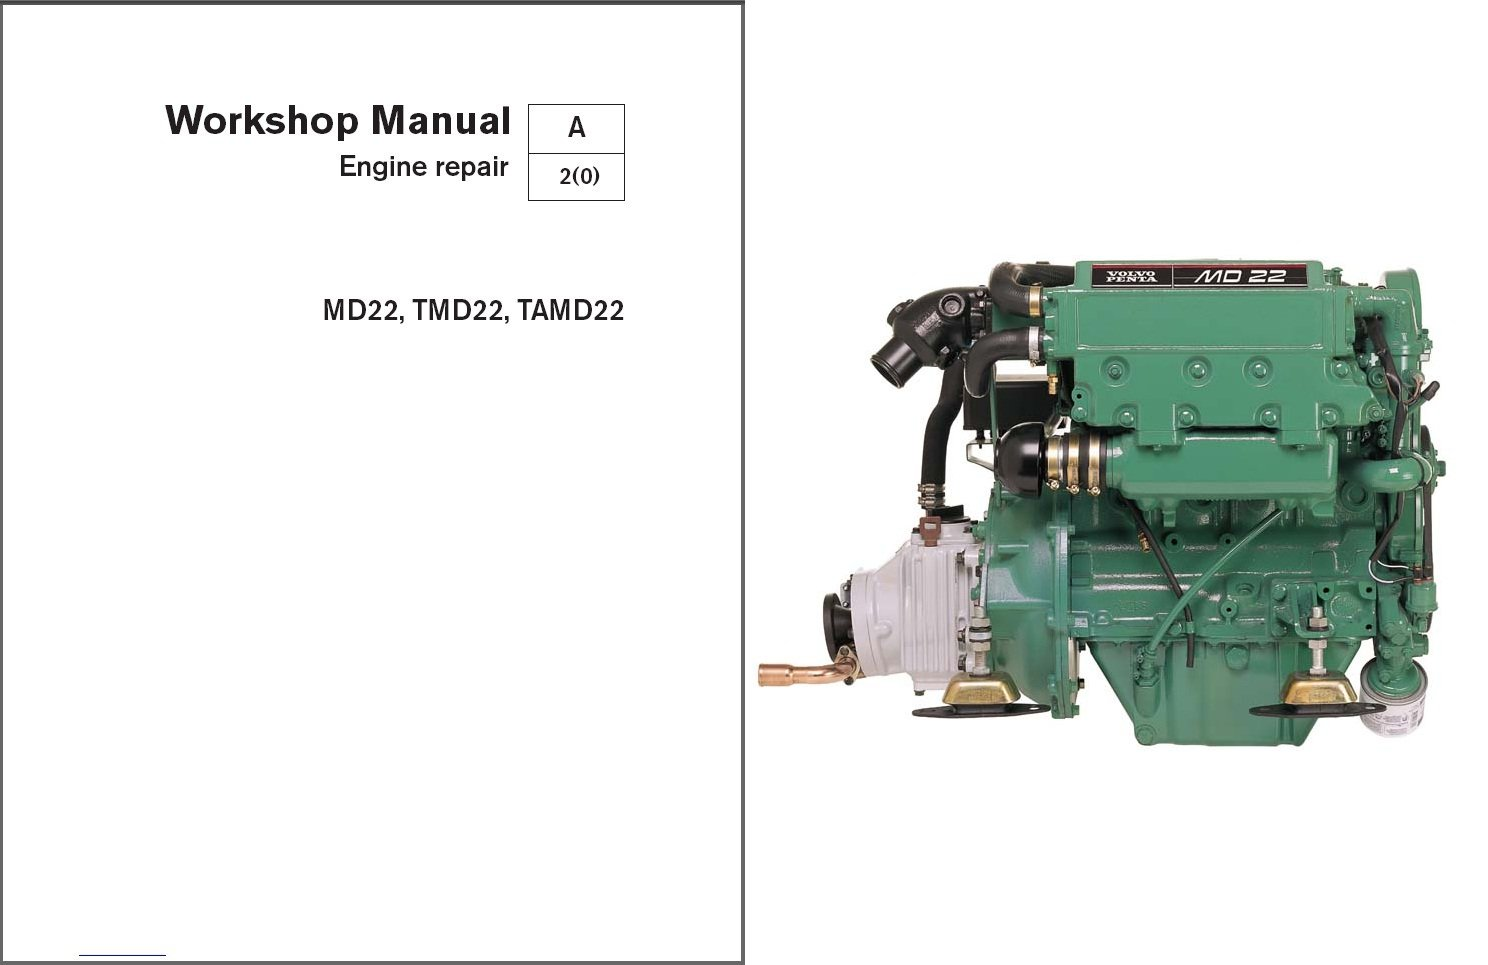 Volvo Penta MD22, TMD22, TAMD22 Marine Engines Service Repair Manual CD